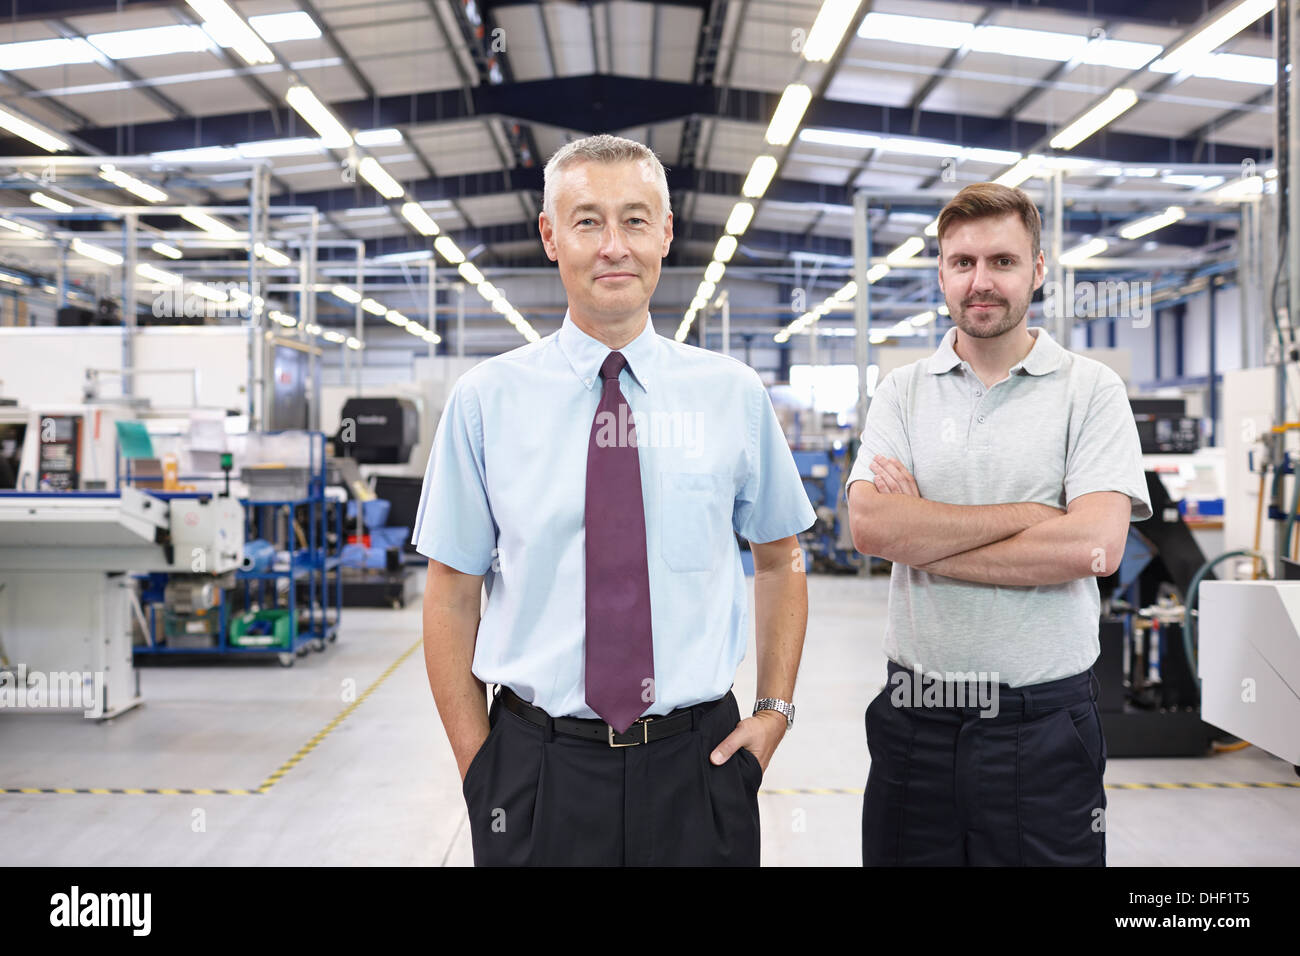 Portrait of manager and co-worker in engineering factory - Stock Image